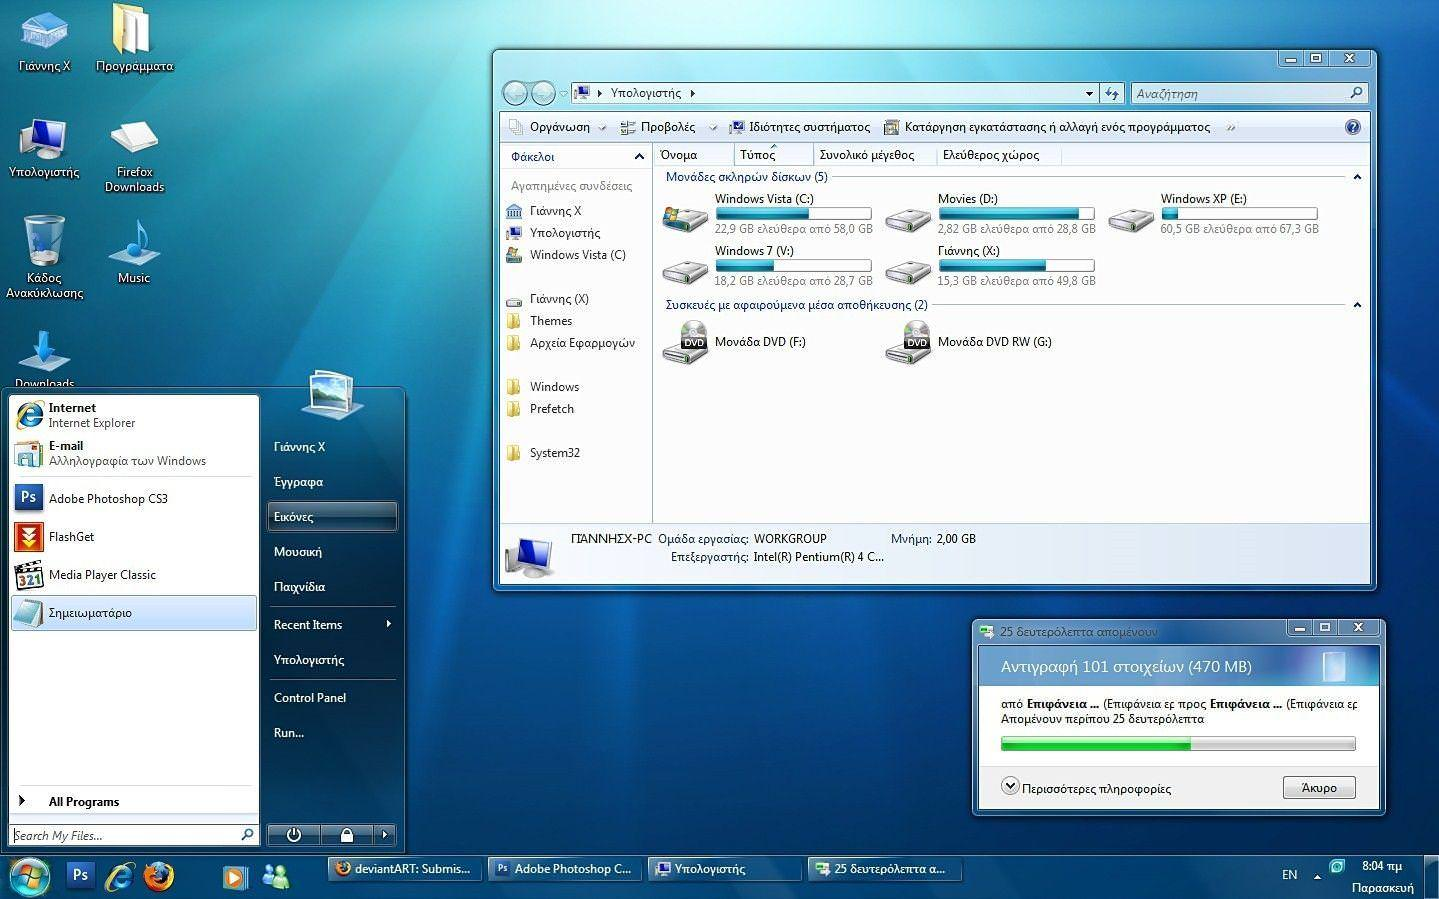 Download Uploader for Windows 7